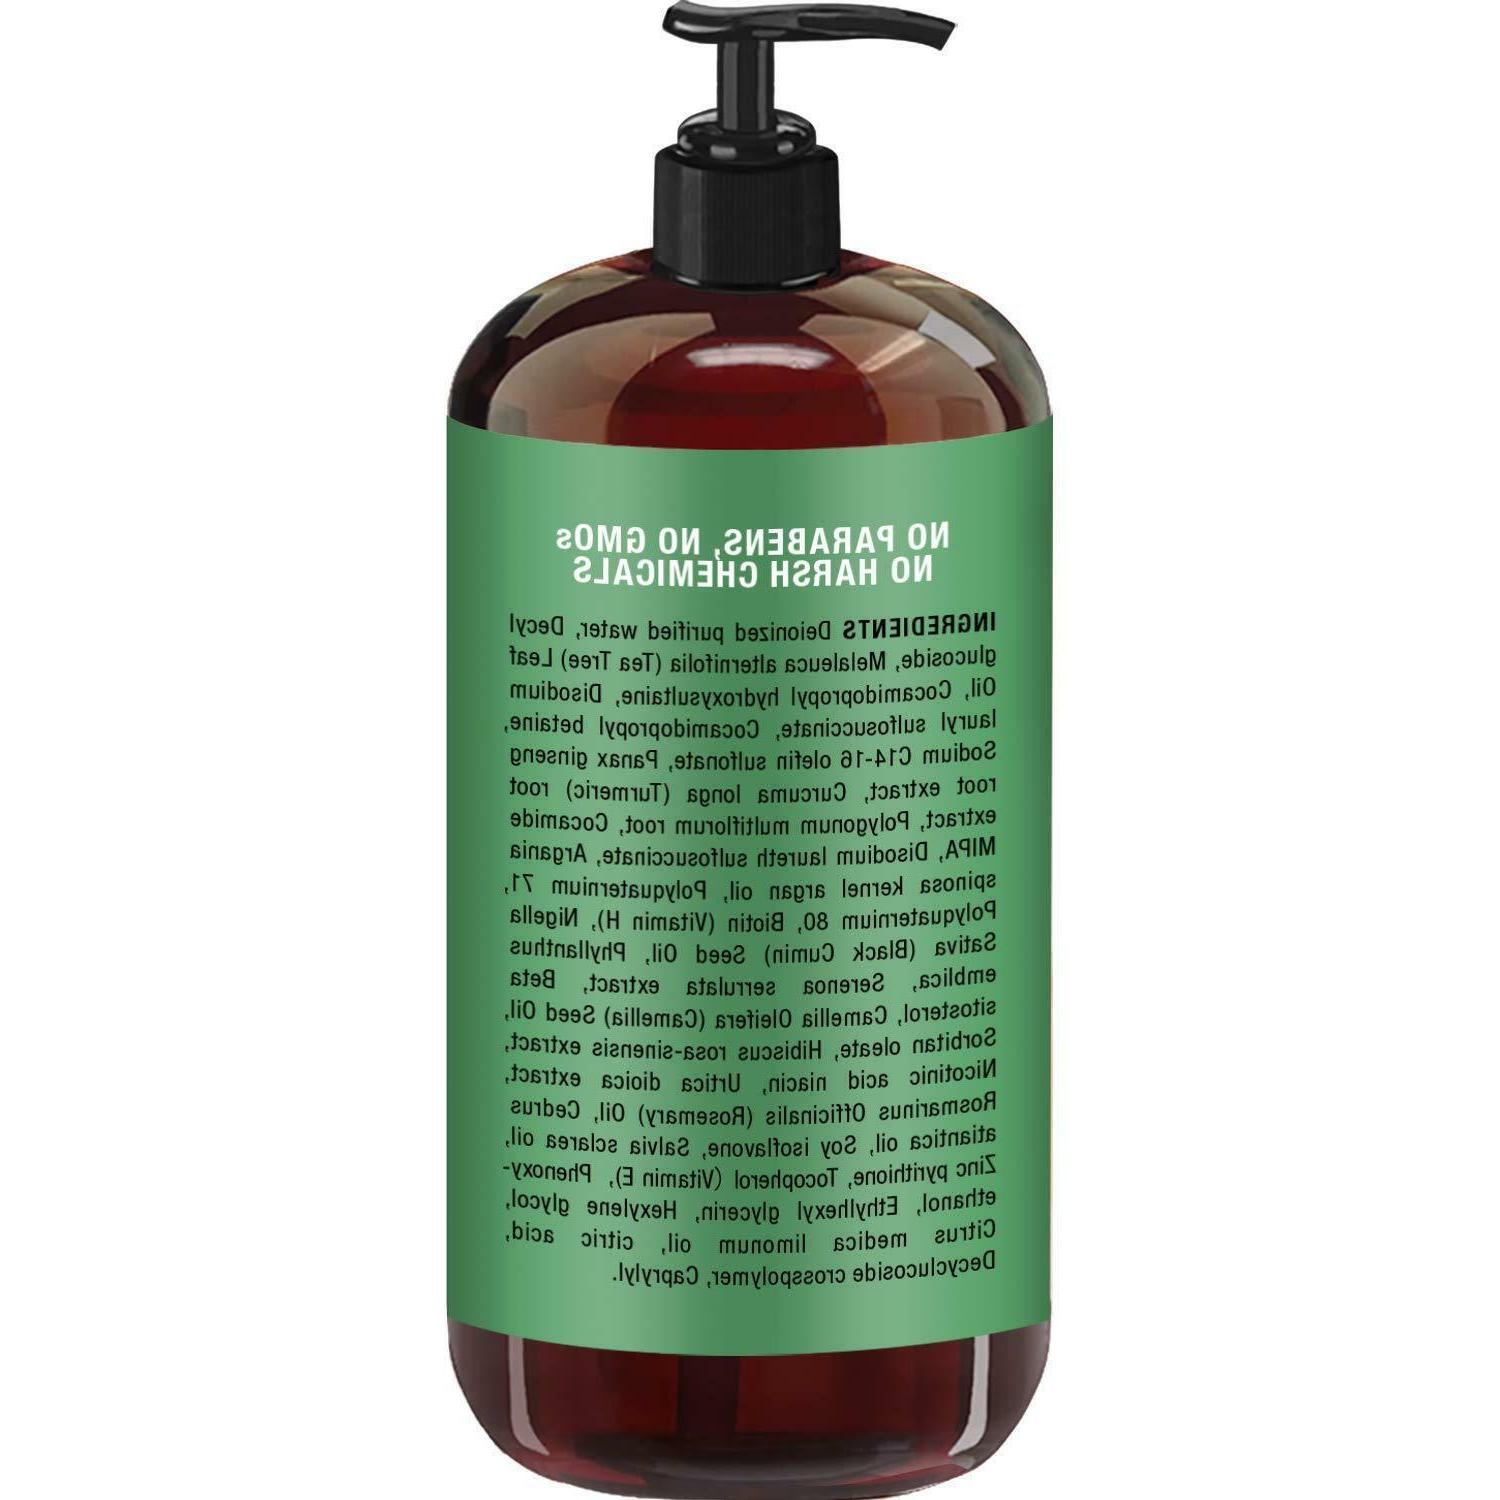 Majestic Tea Oil Hair Sulfate Free with Tea Tree